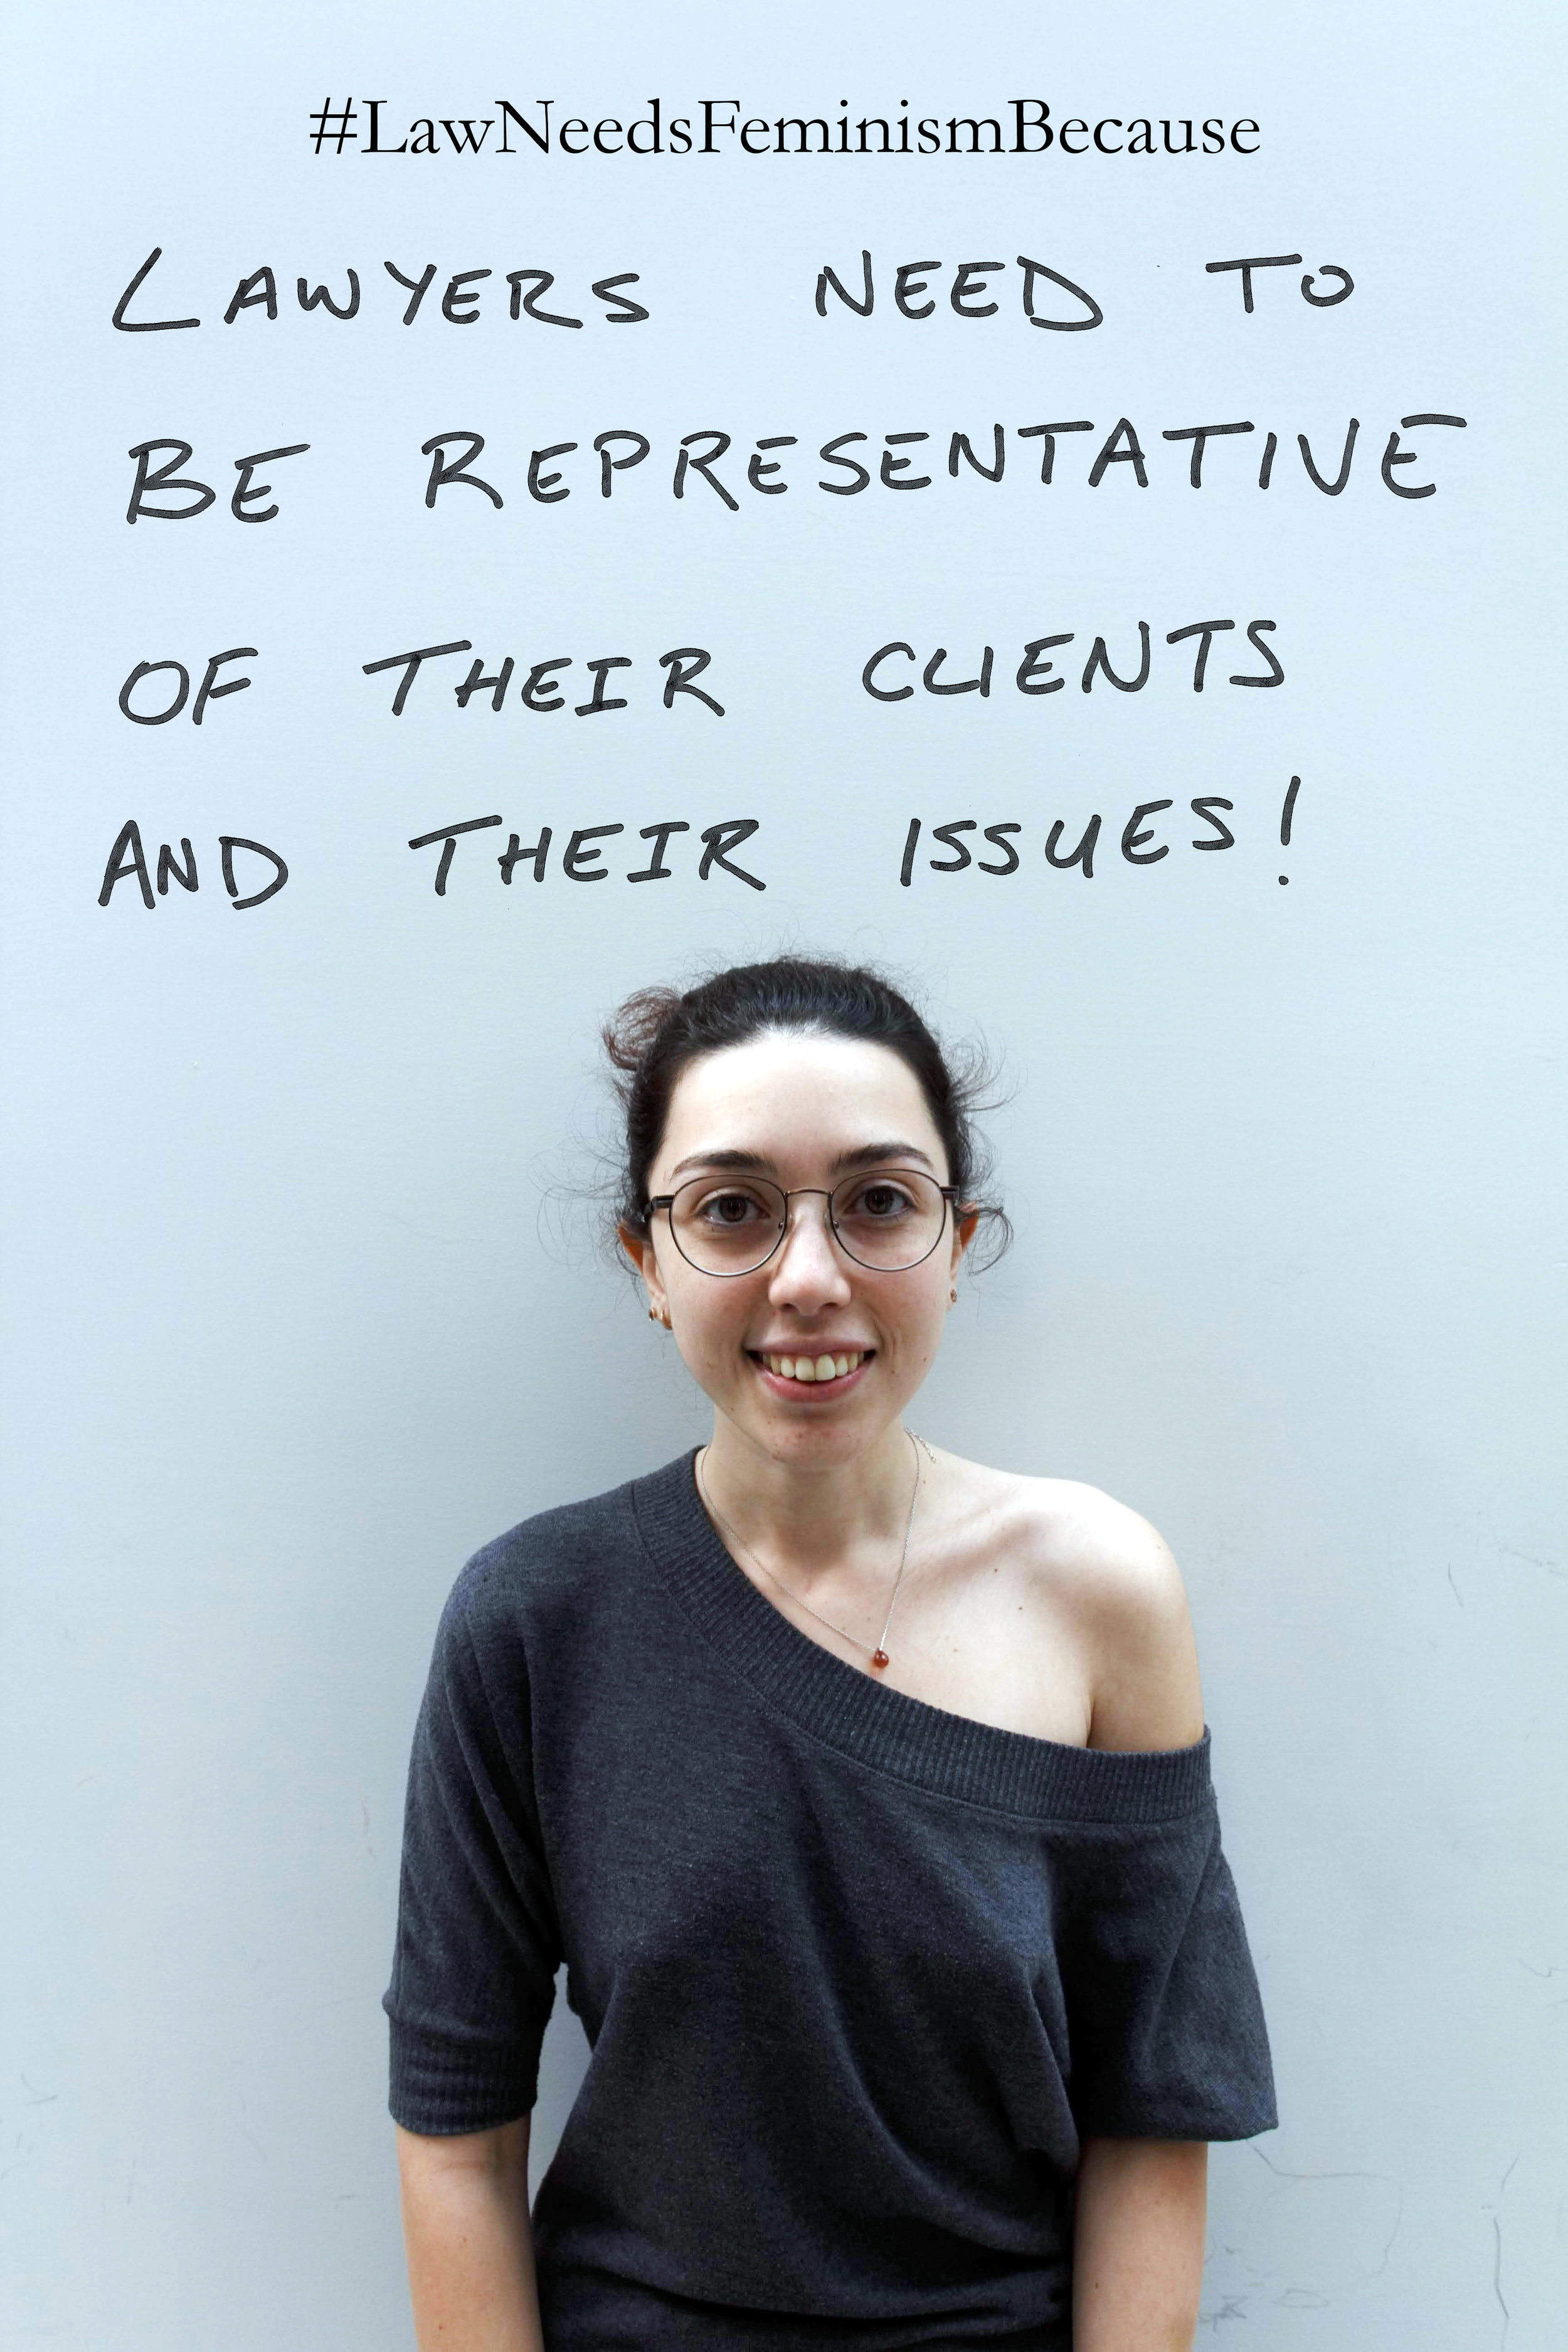 """Law Needs Feminism Because  """"Lawyers need to be representative of their clients and their issues!"""""""